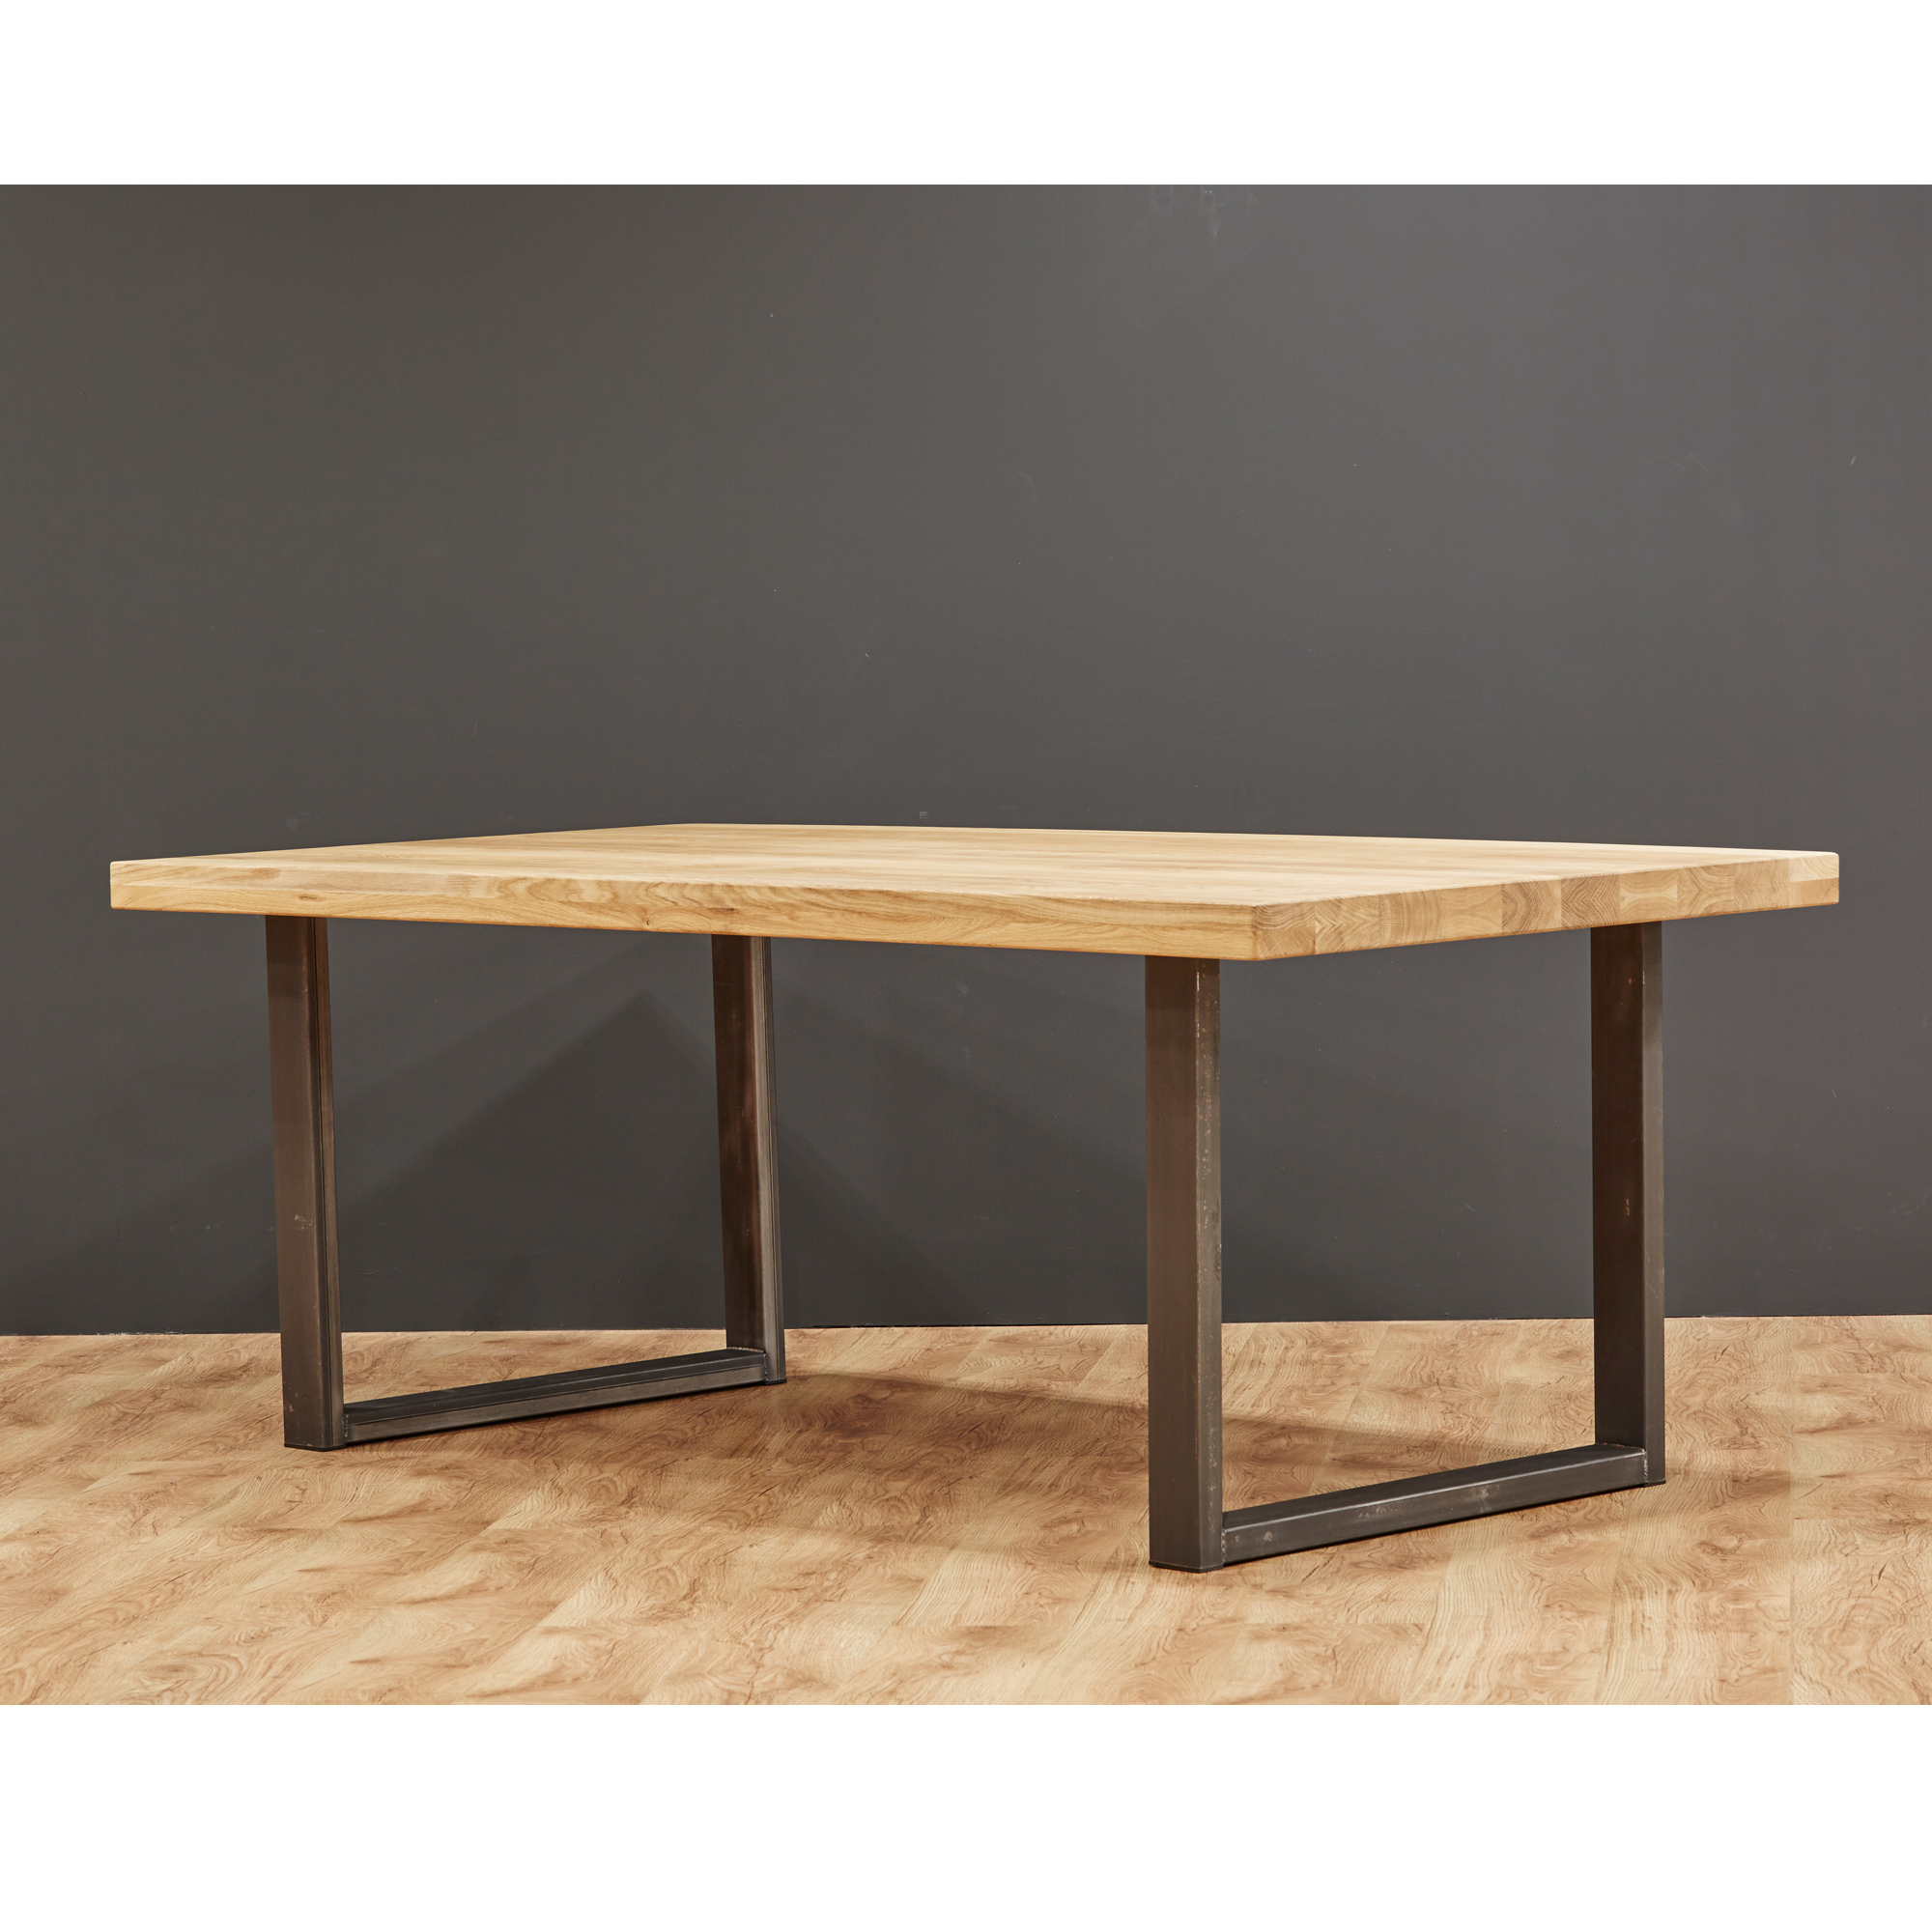 Stone Dining Table No 44 Furniture Cobham Nr London